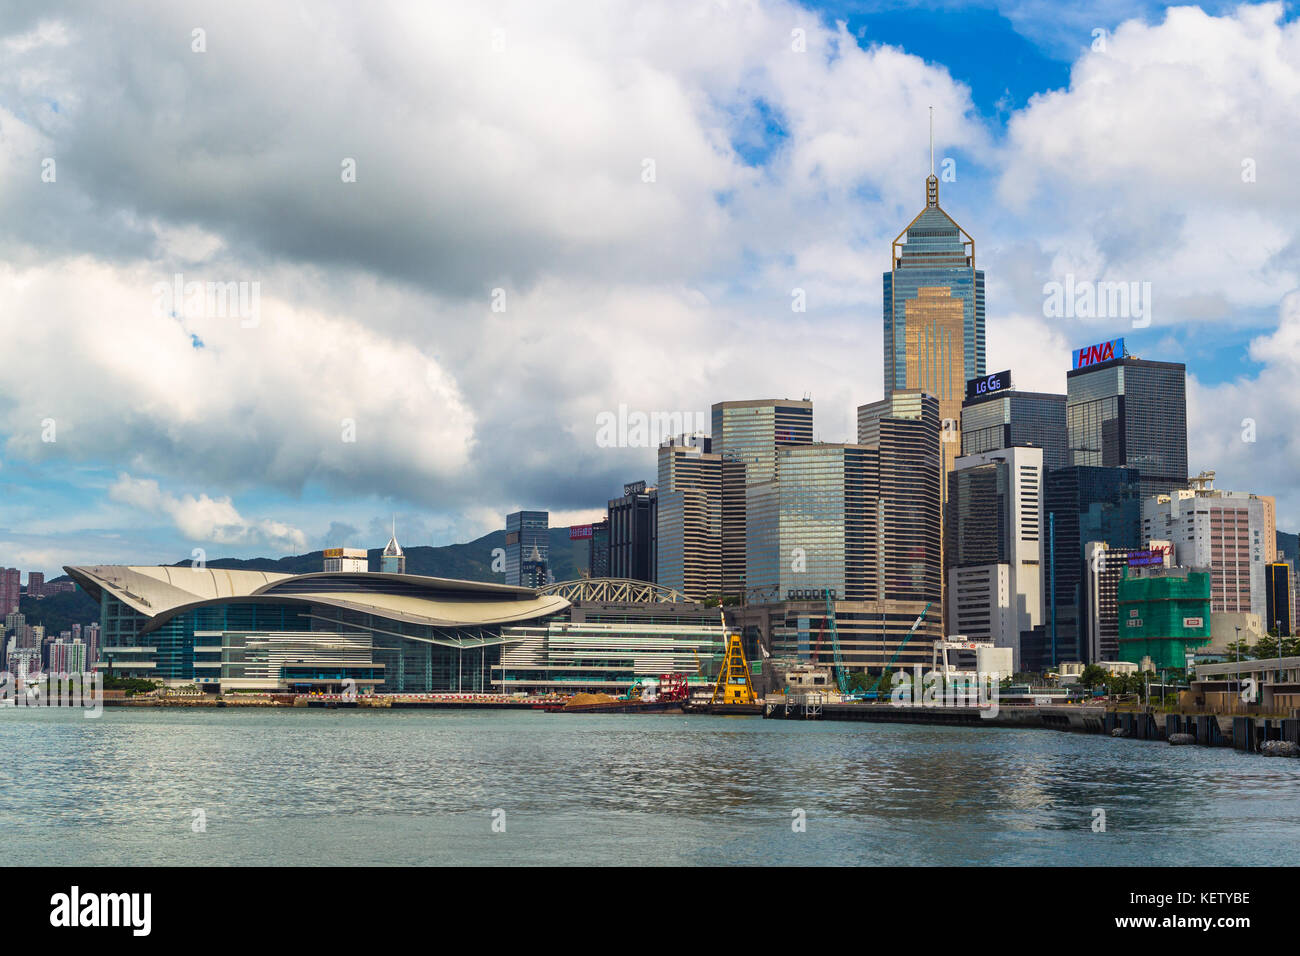 Honk Kong city view. China. - Stock Image